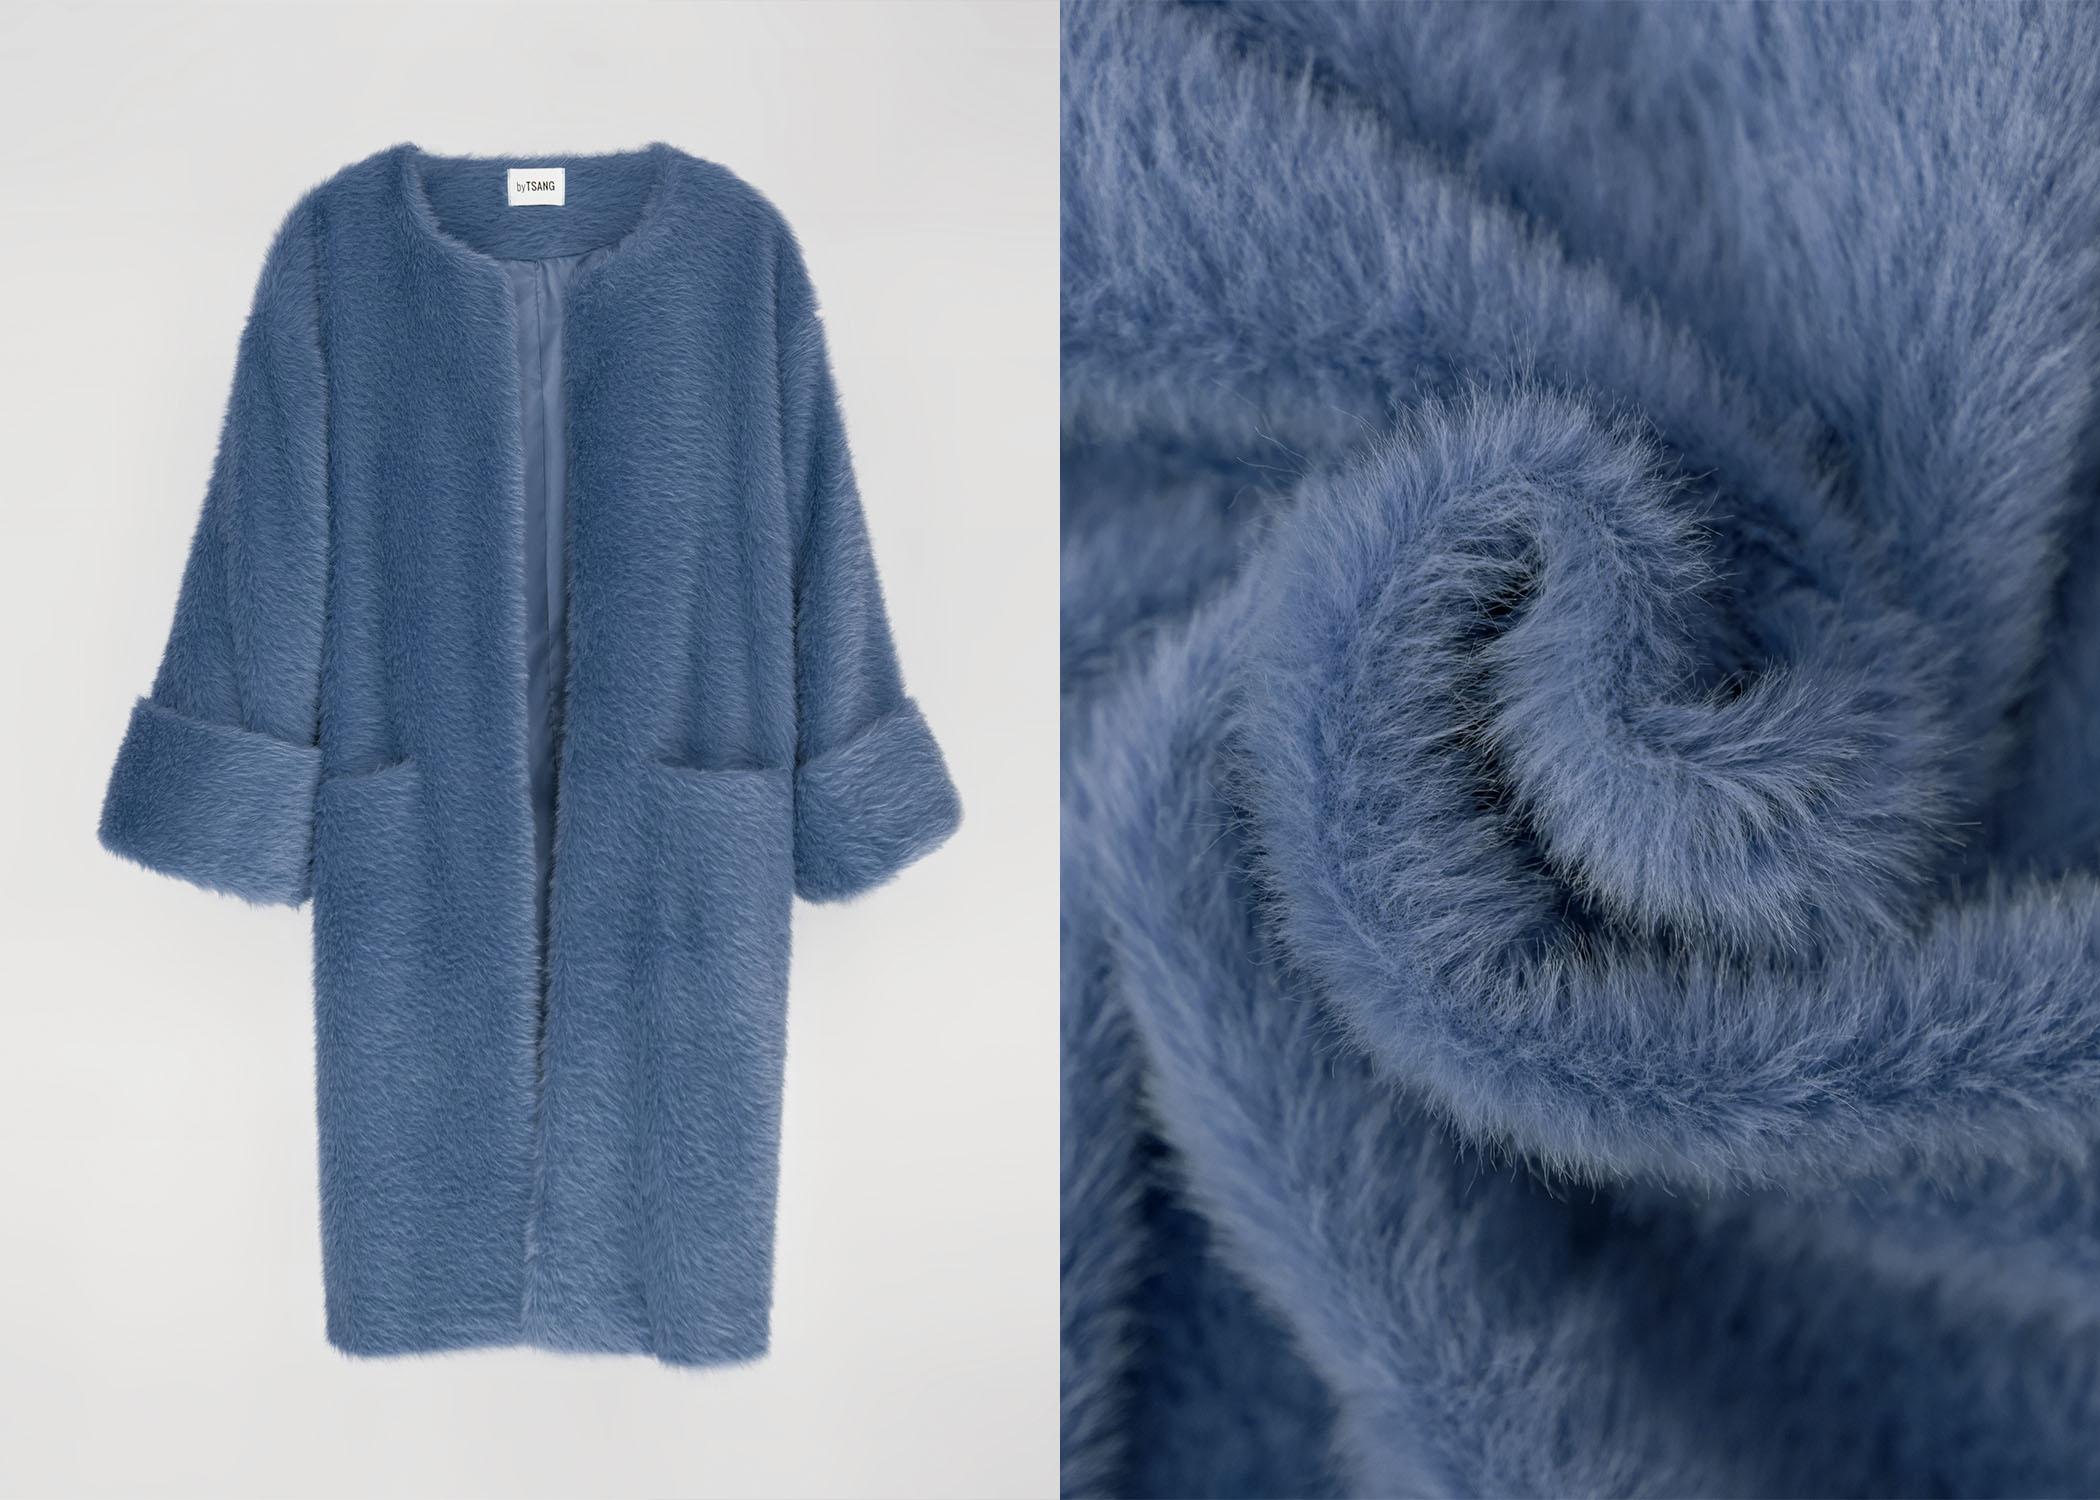 byTSANG season II fuzzy II cardigan coat in stormy sky blue